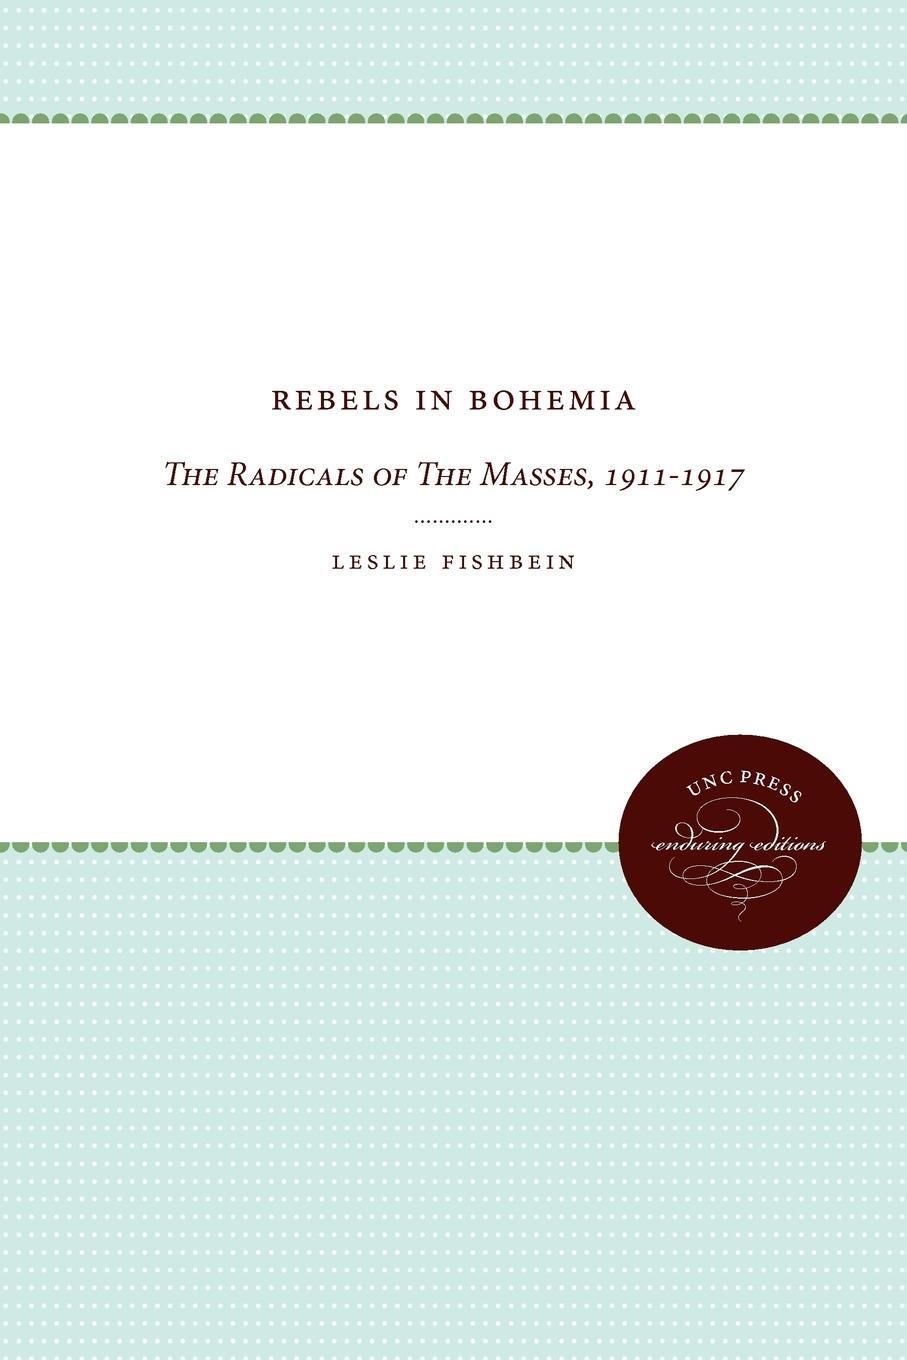 Leslie Fishbein Rebels in Bohemia. The Radicals of the Masses, 1911-1917 radicals